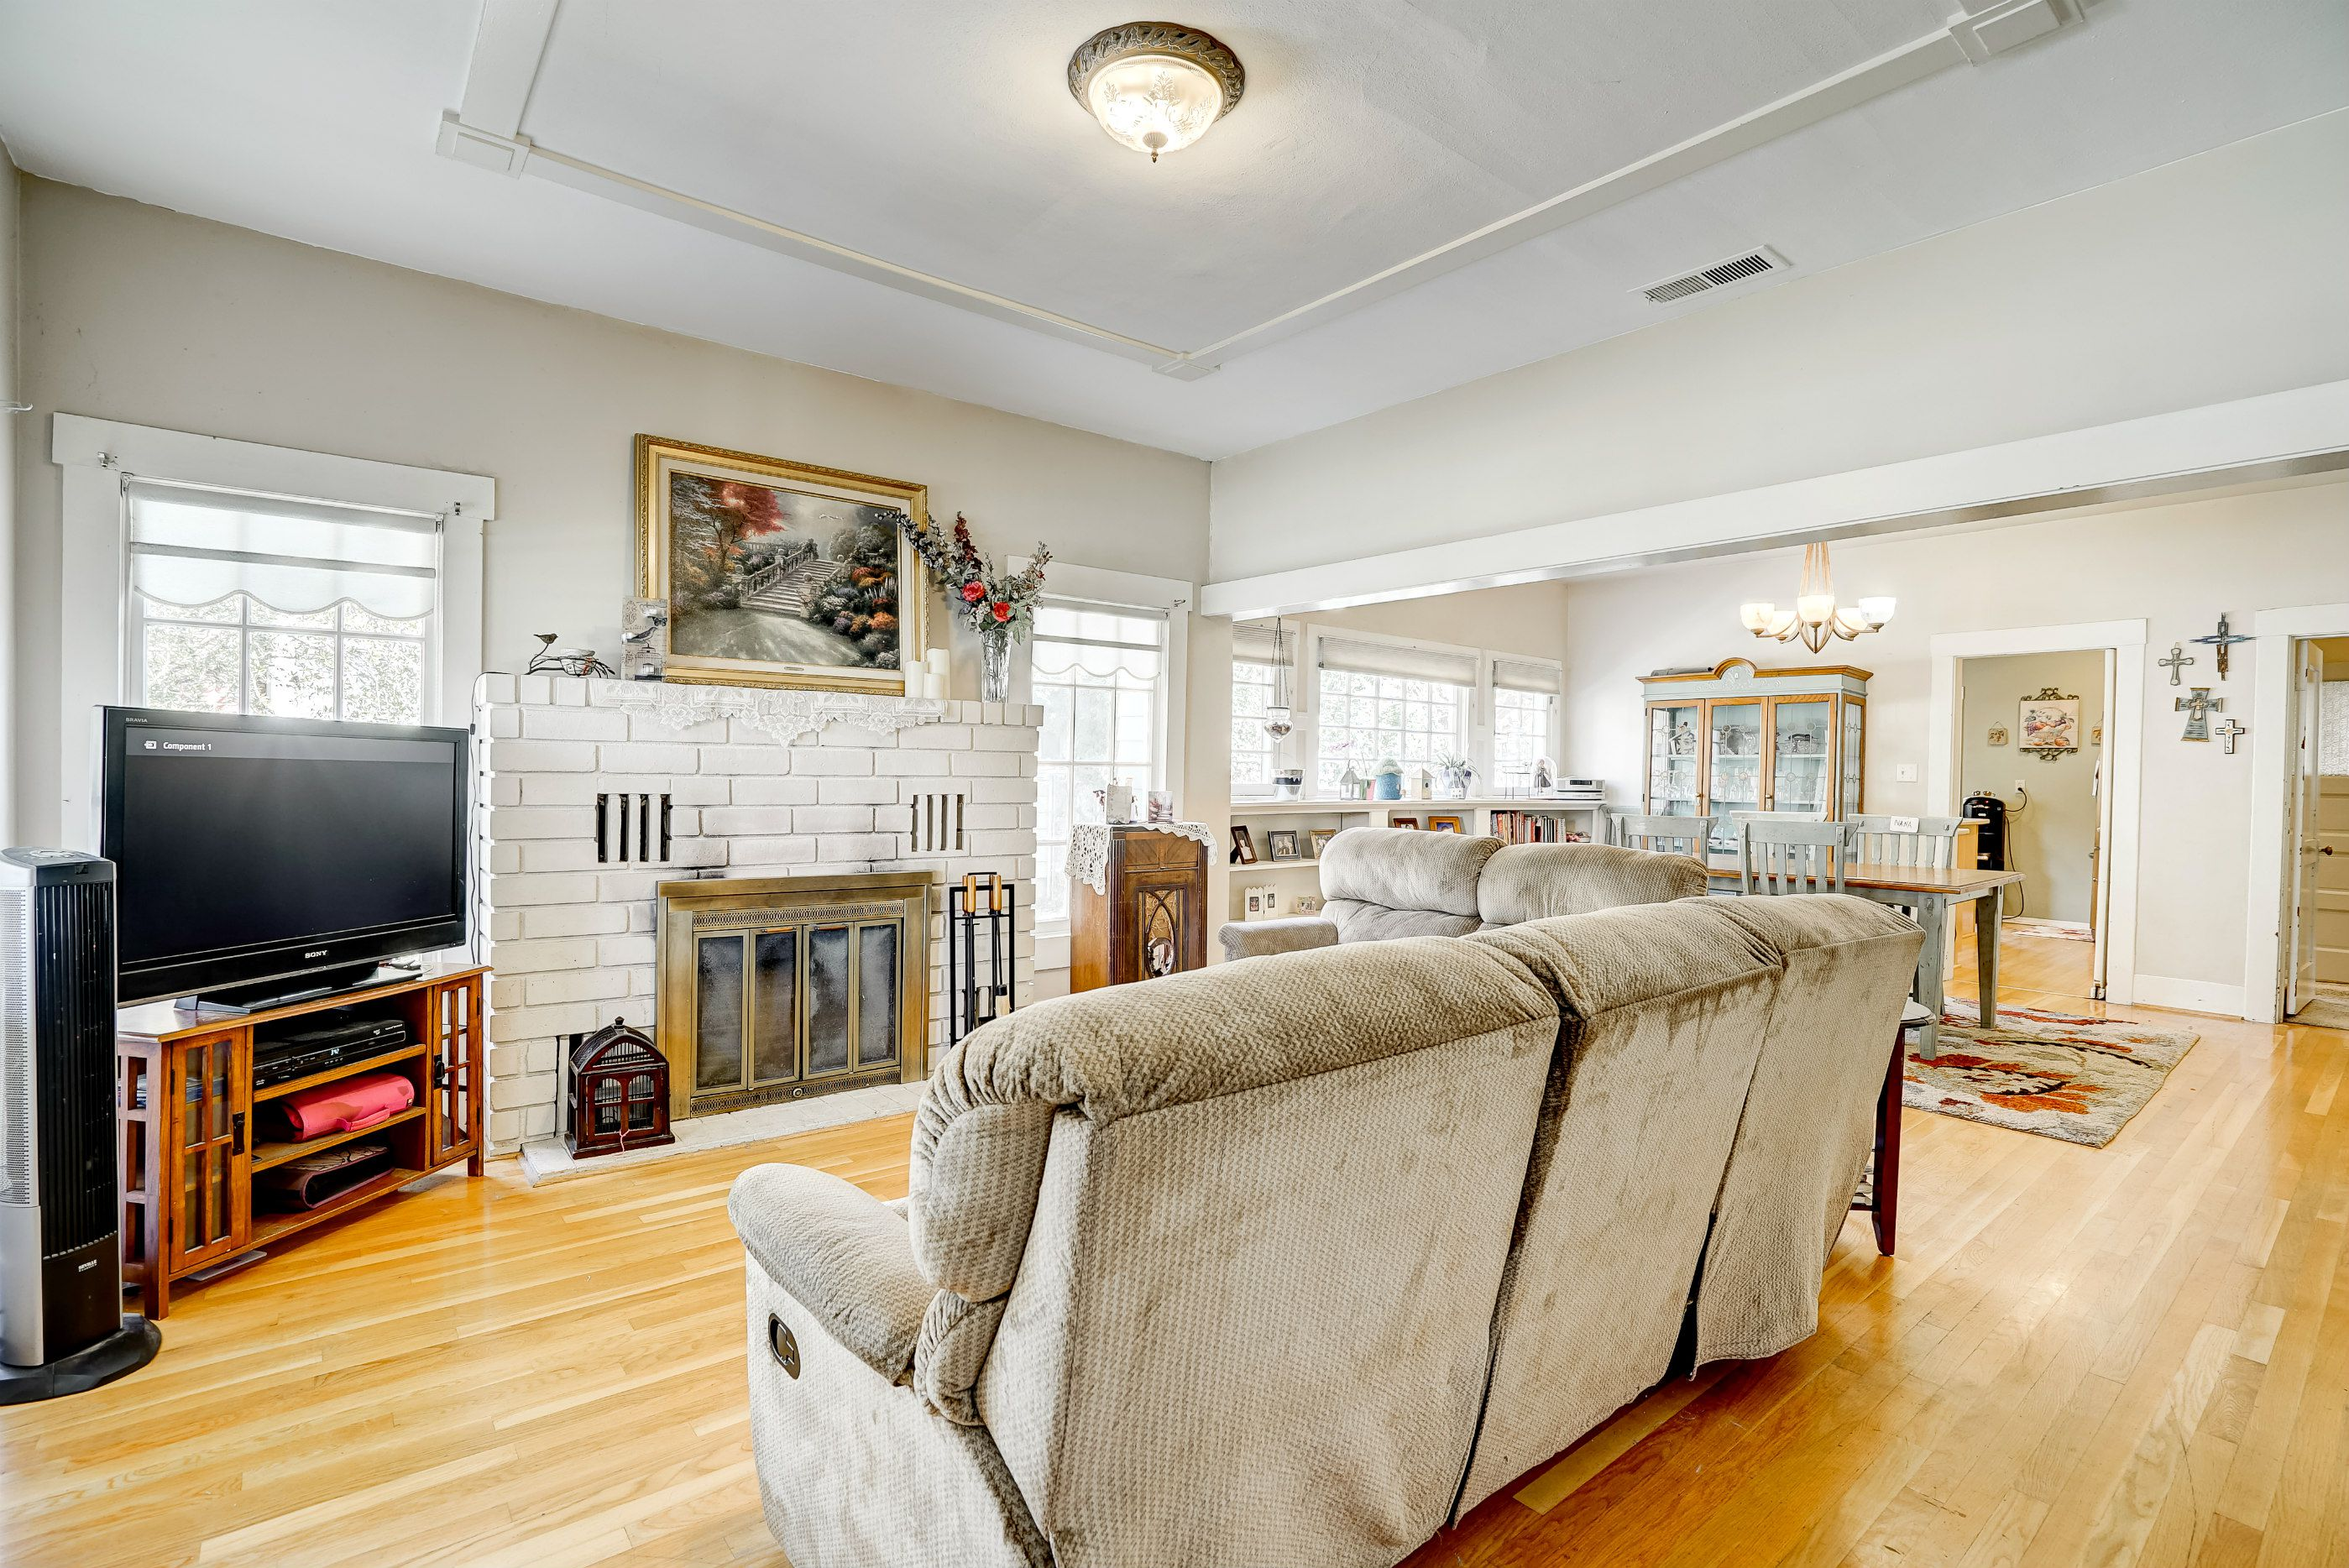 View of open floor plan upon entering the home.